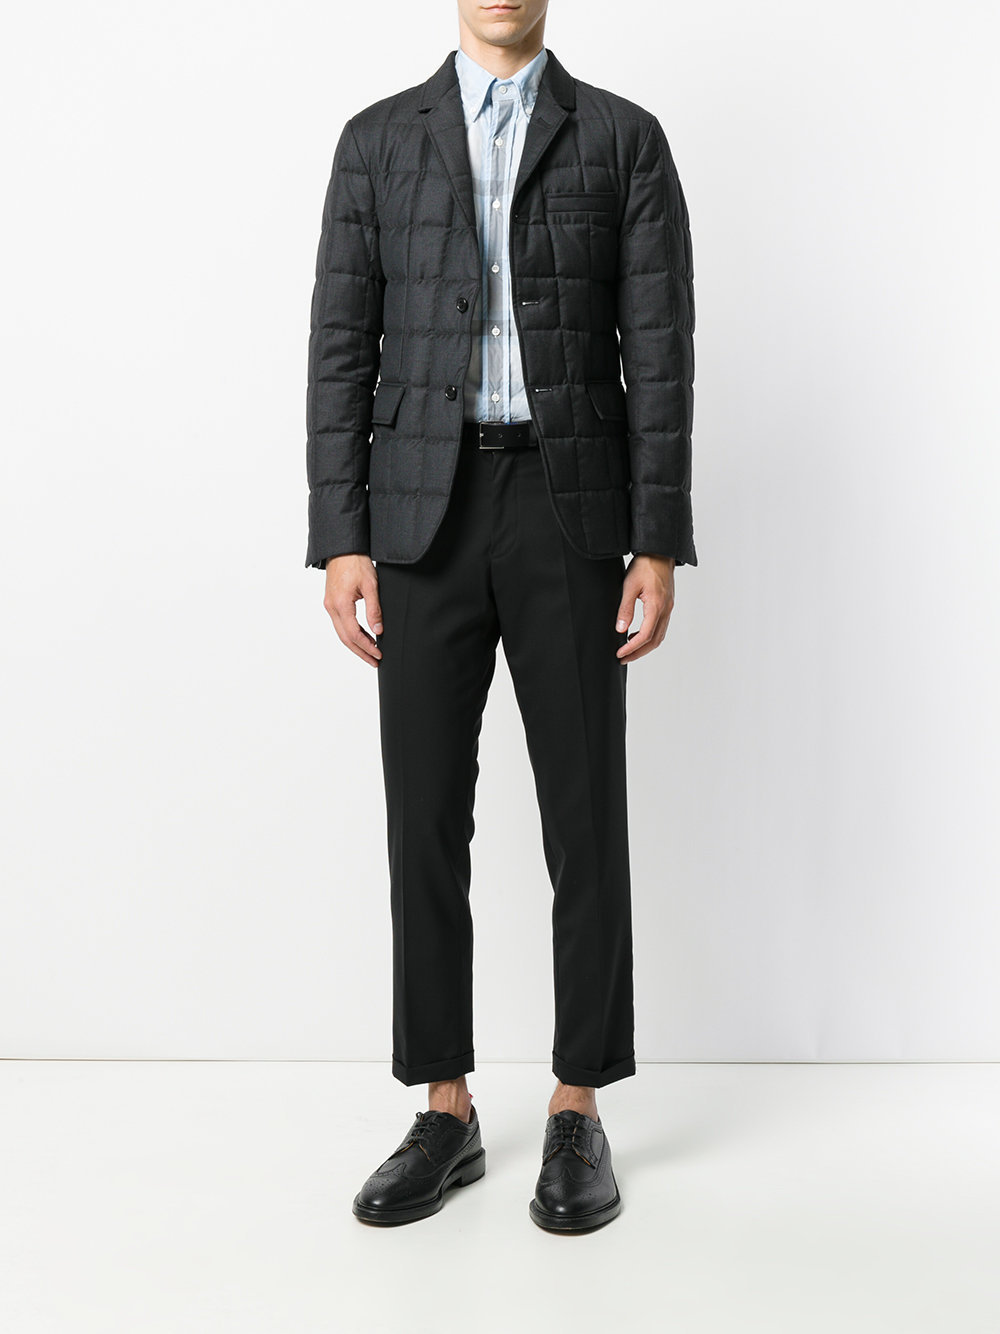 【17AW】THOM BROWNE/Down Classic Sports courtスーパー130's